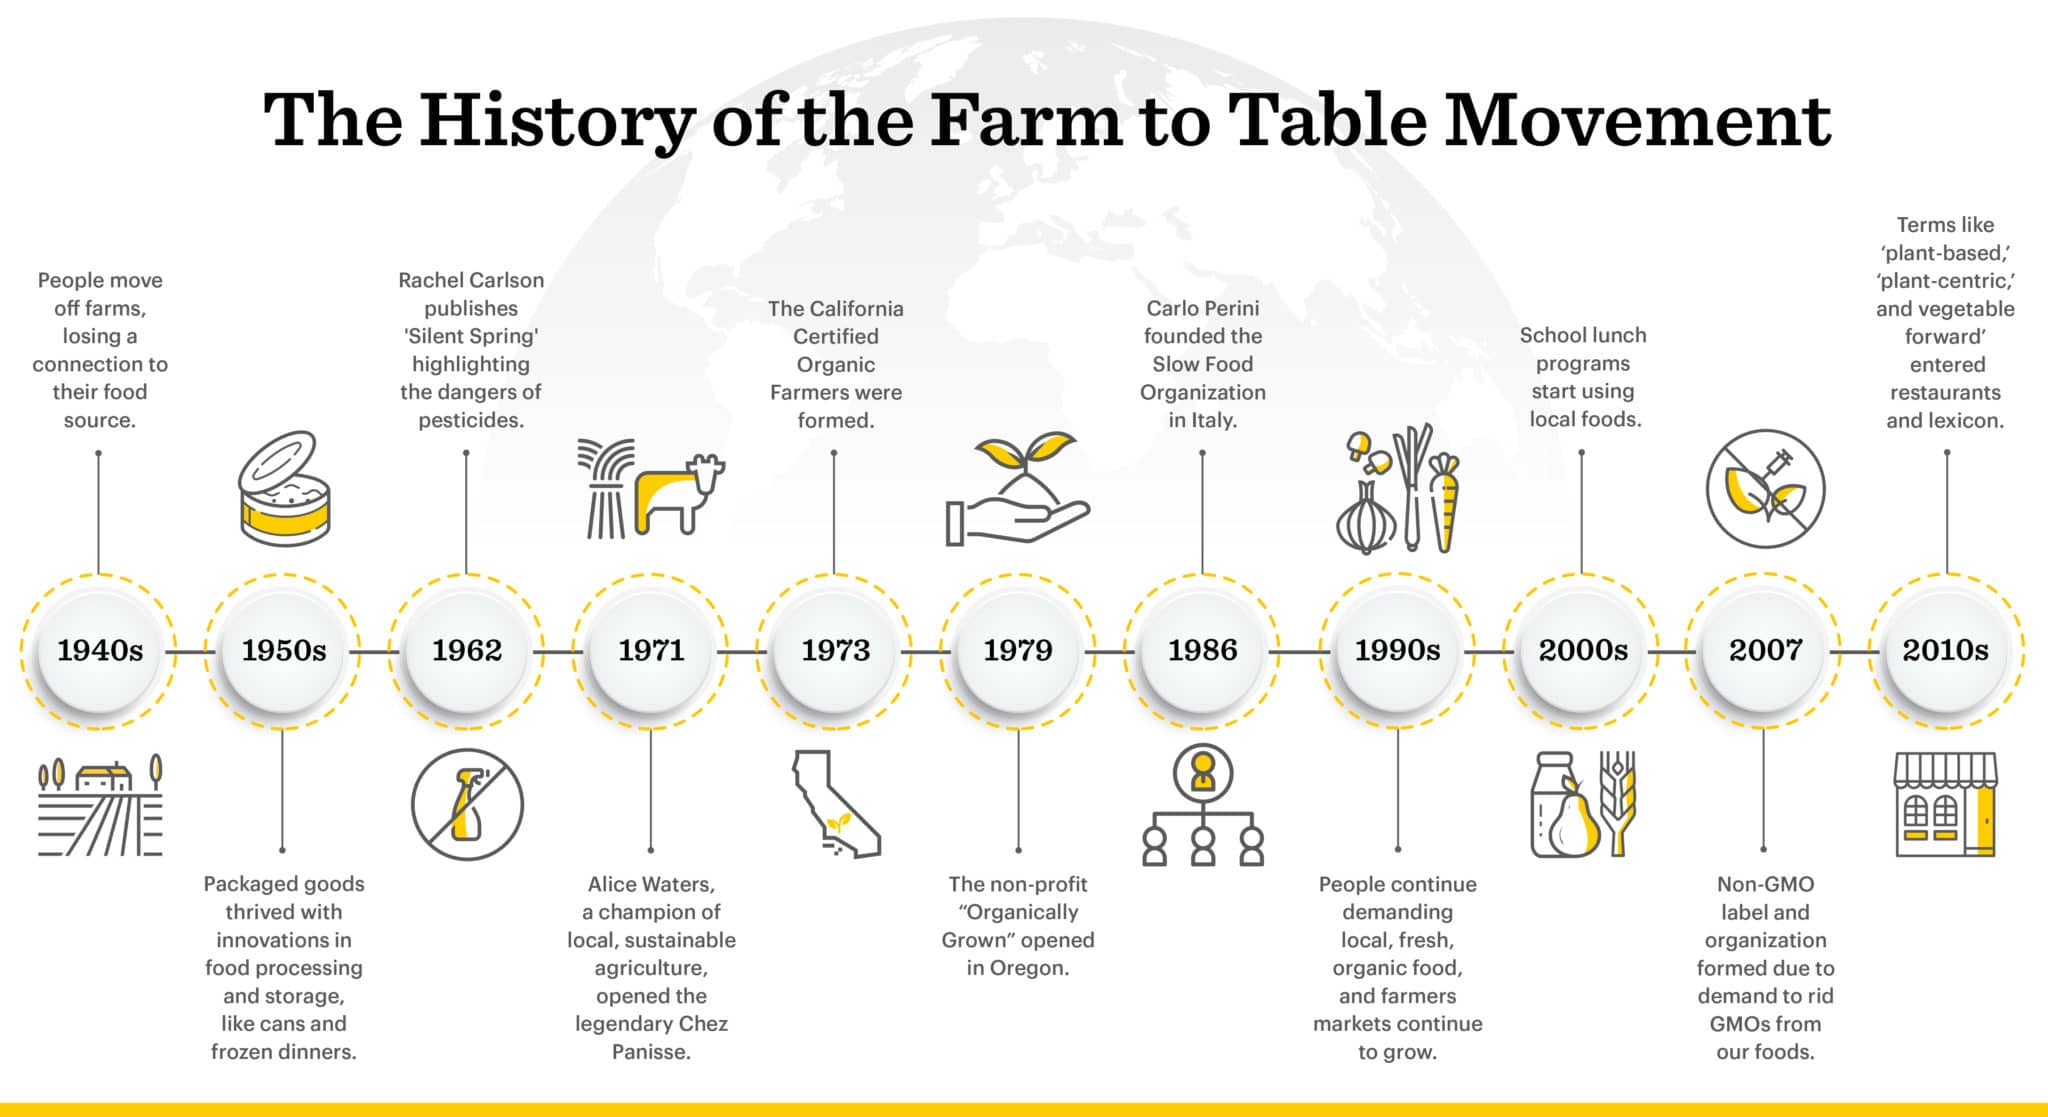 The History of the Farm to Table Movement